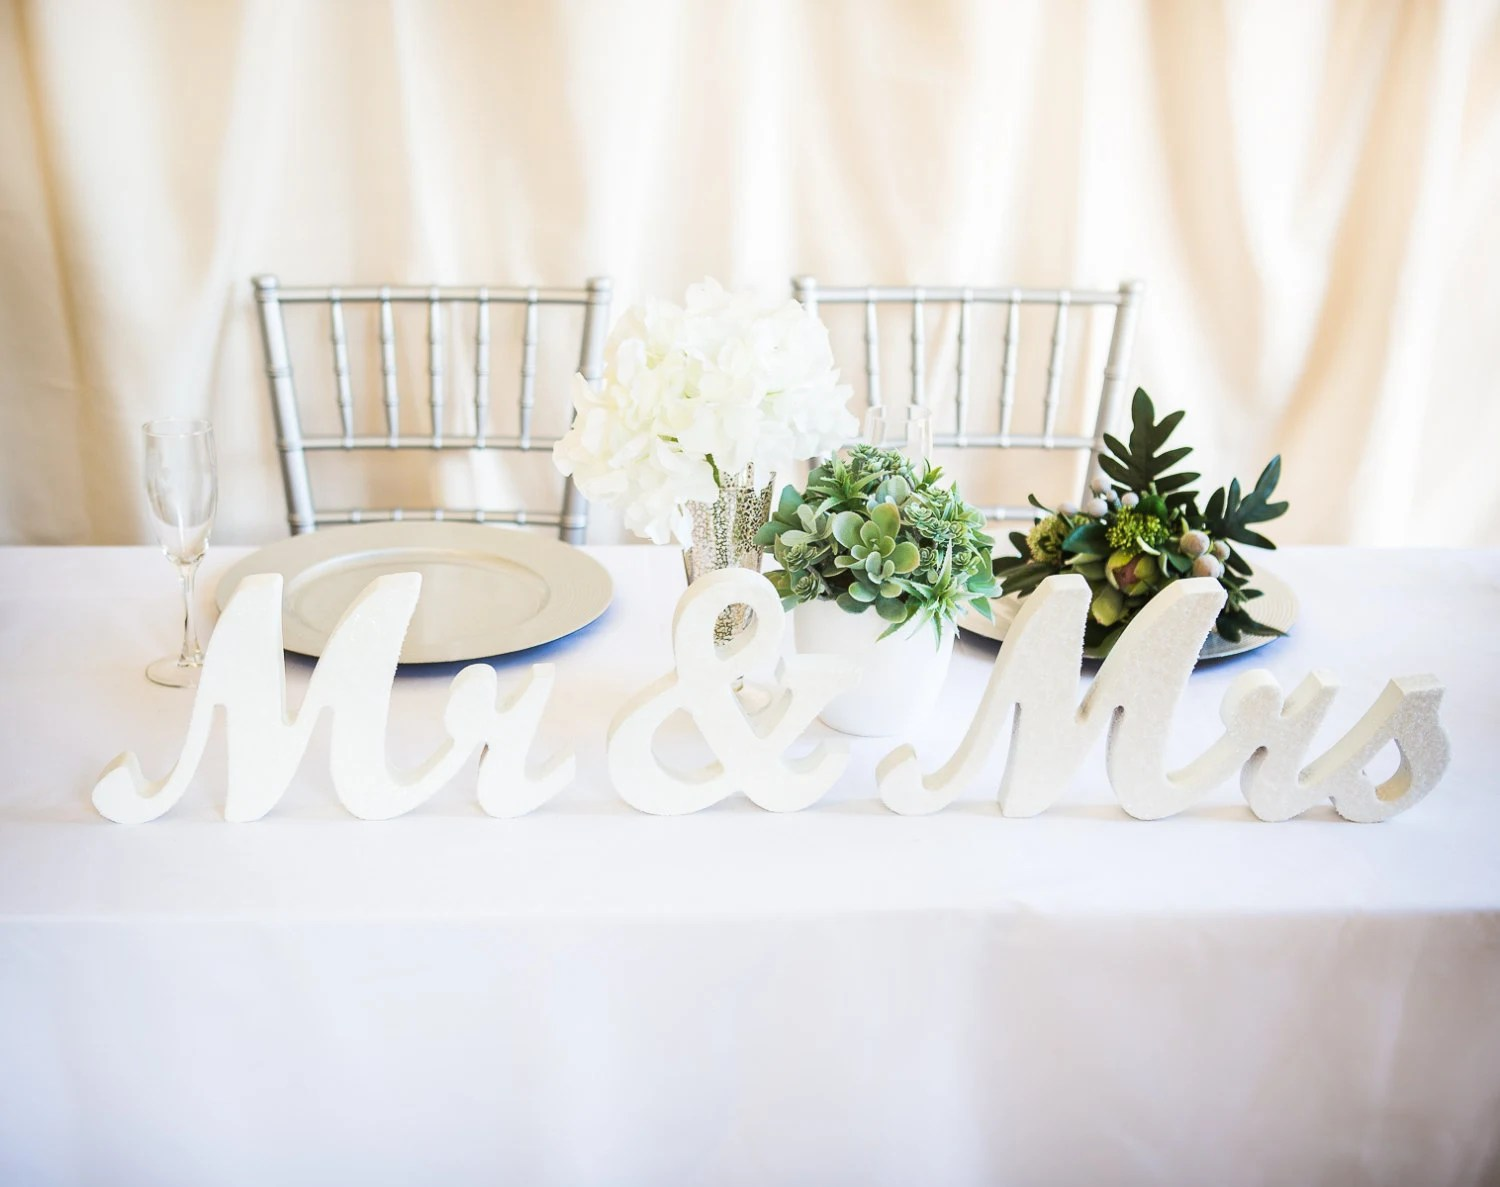 Mr And Mrs Wedding Signs For Sweetheart Table Decor Wooden